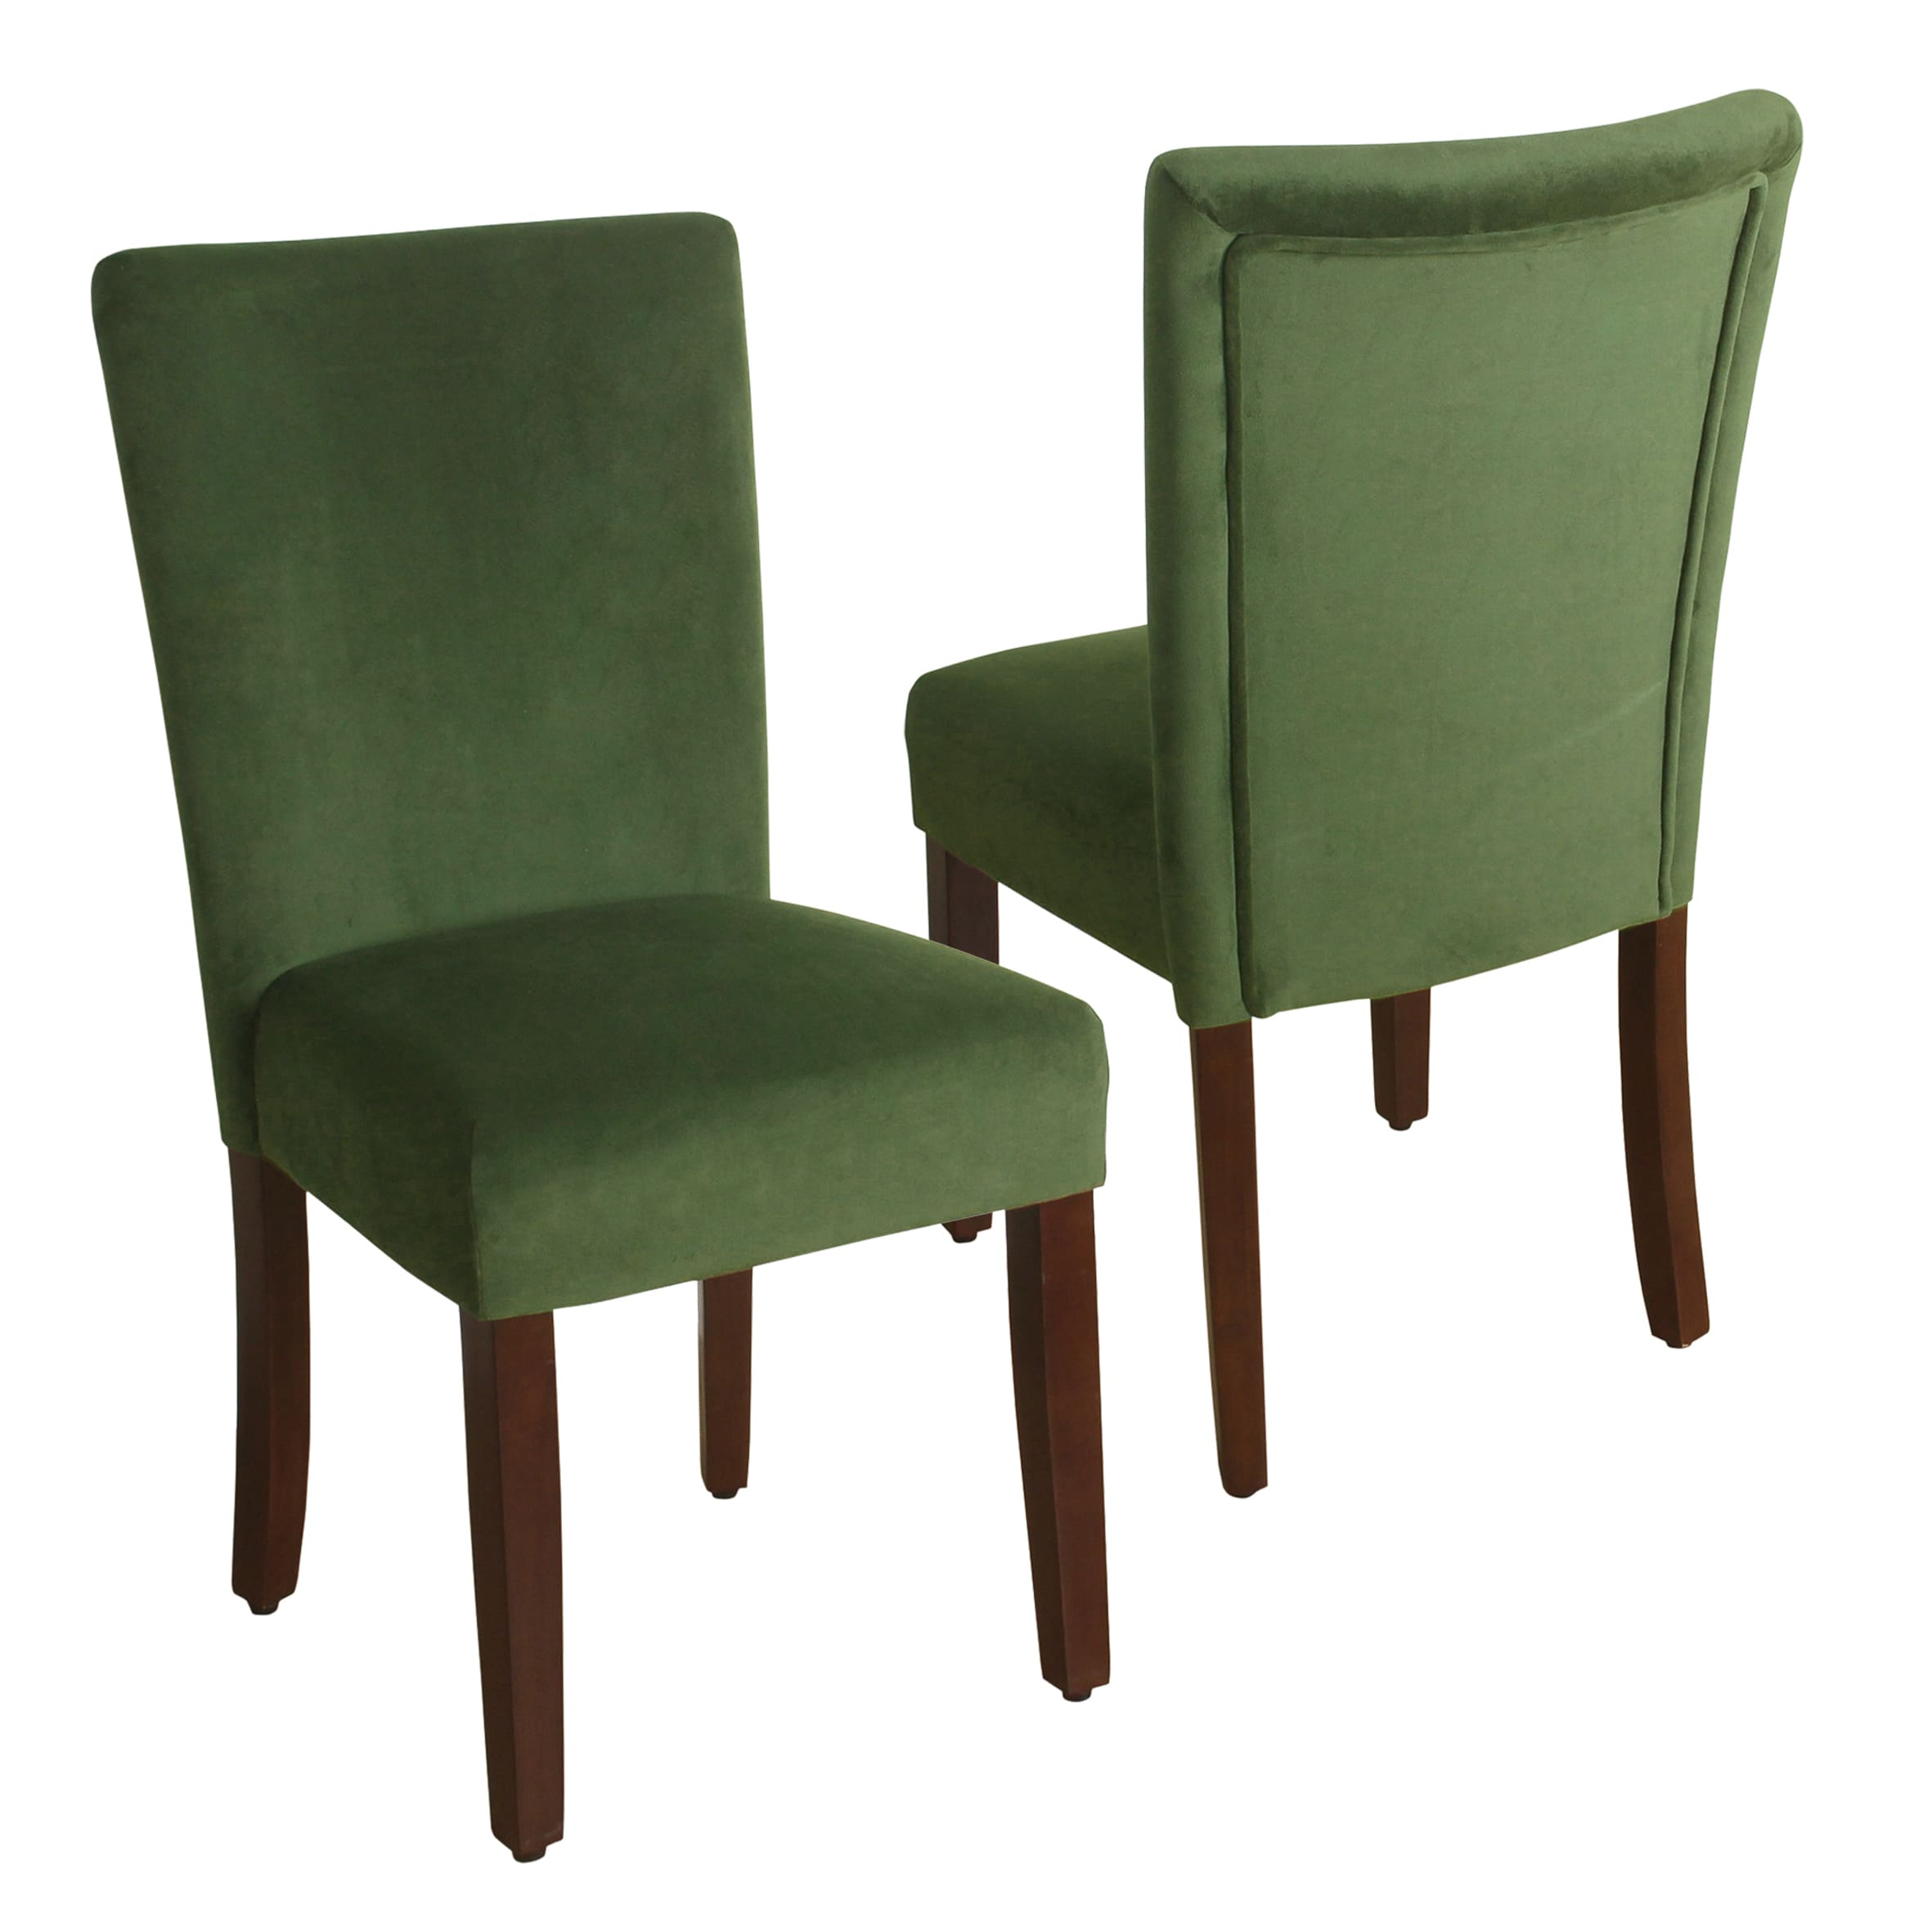 Green Velvet Dining Chairs Buy Kitchen And Dining Room Chairs Online At Overstock